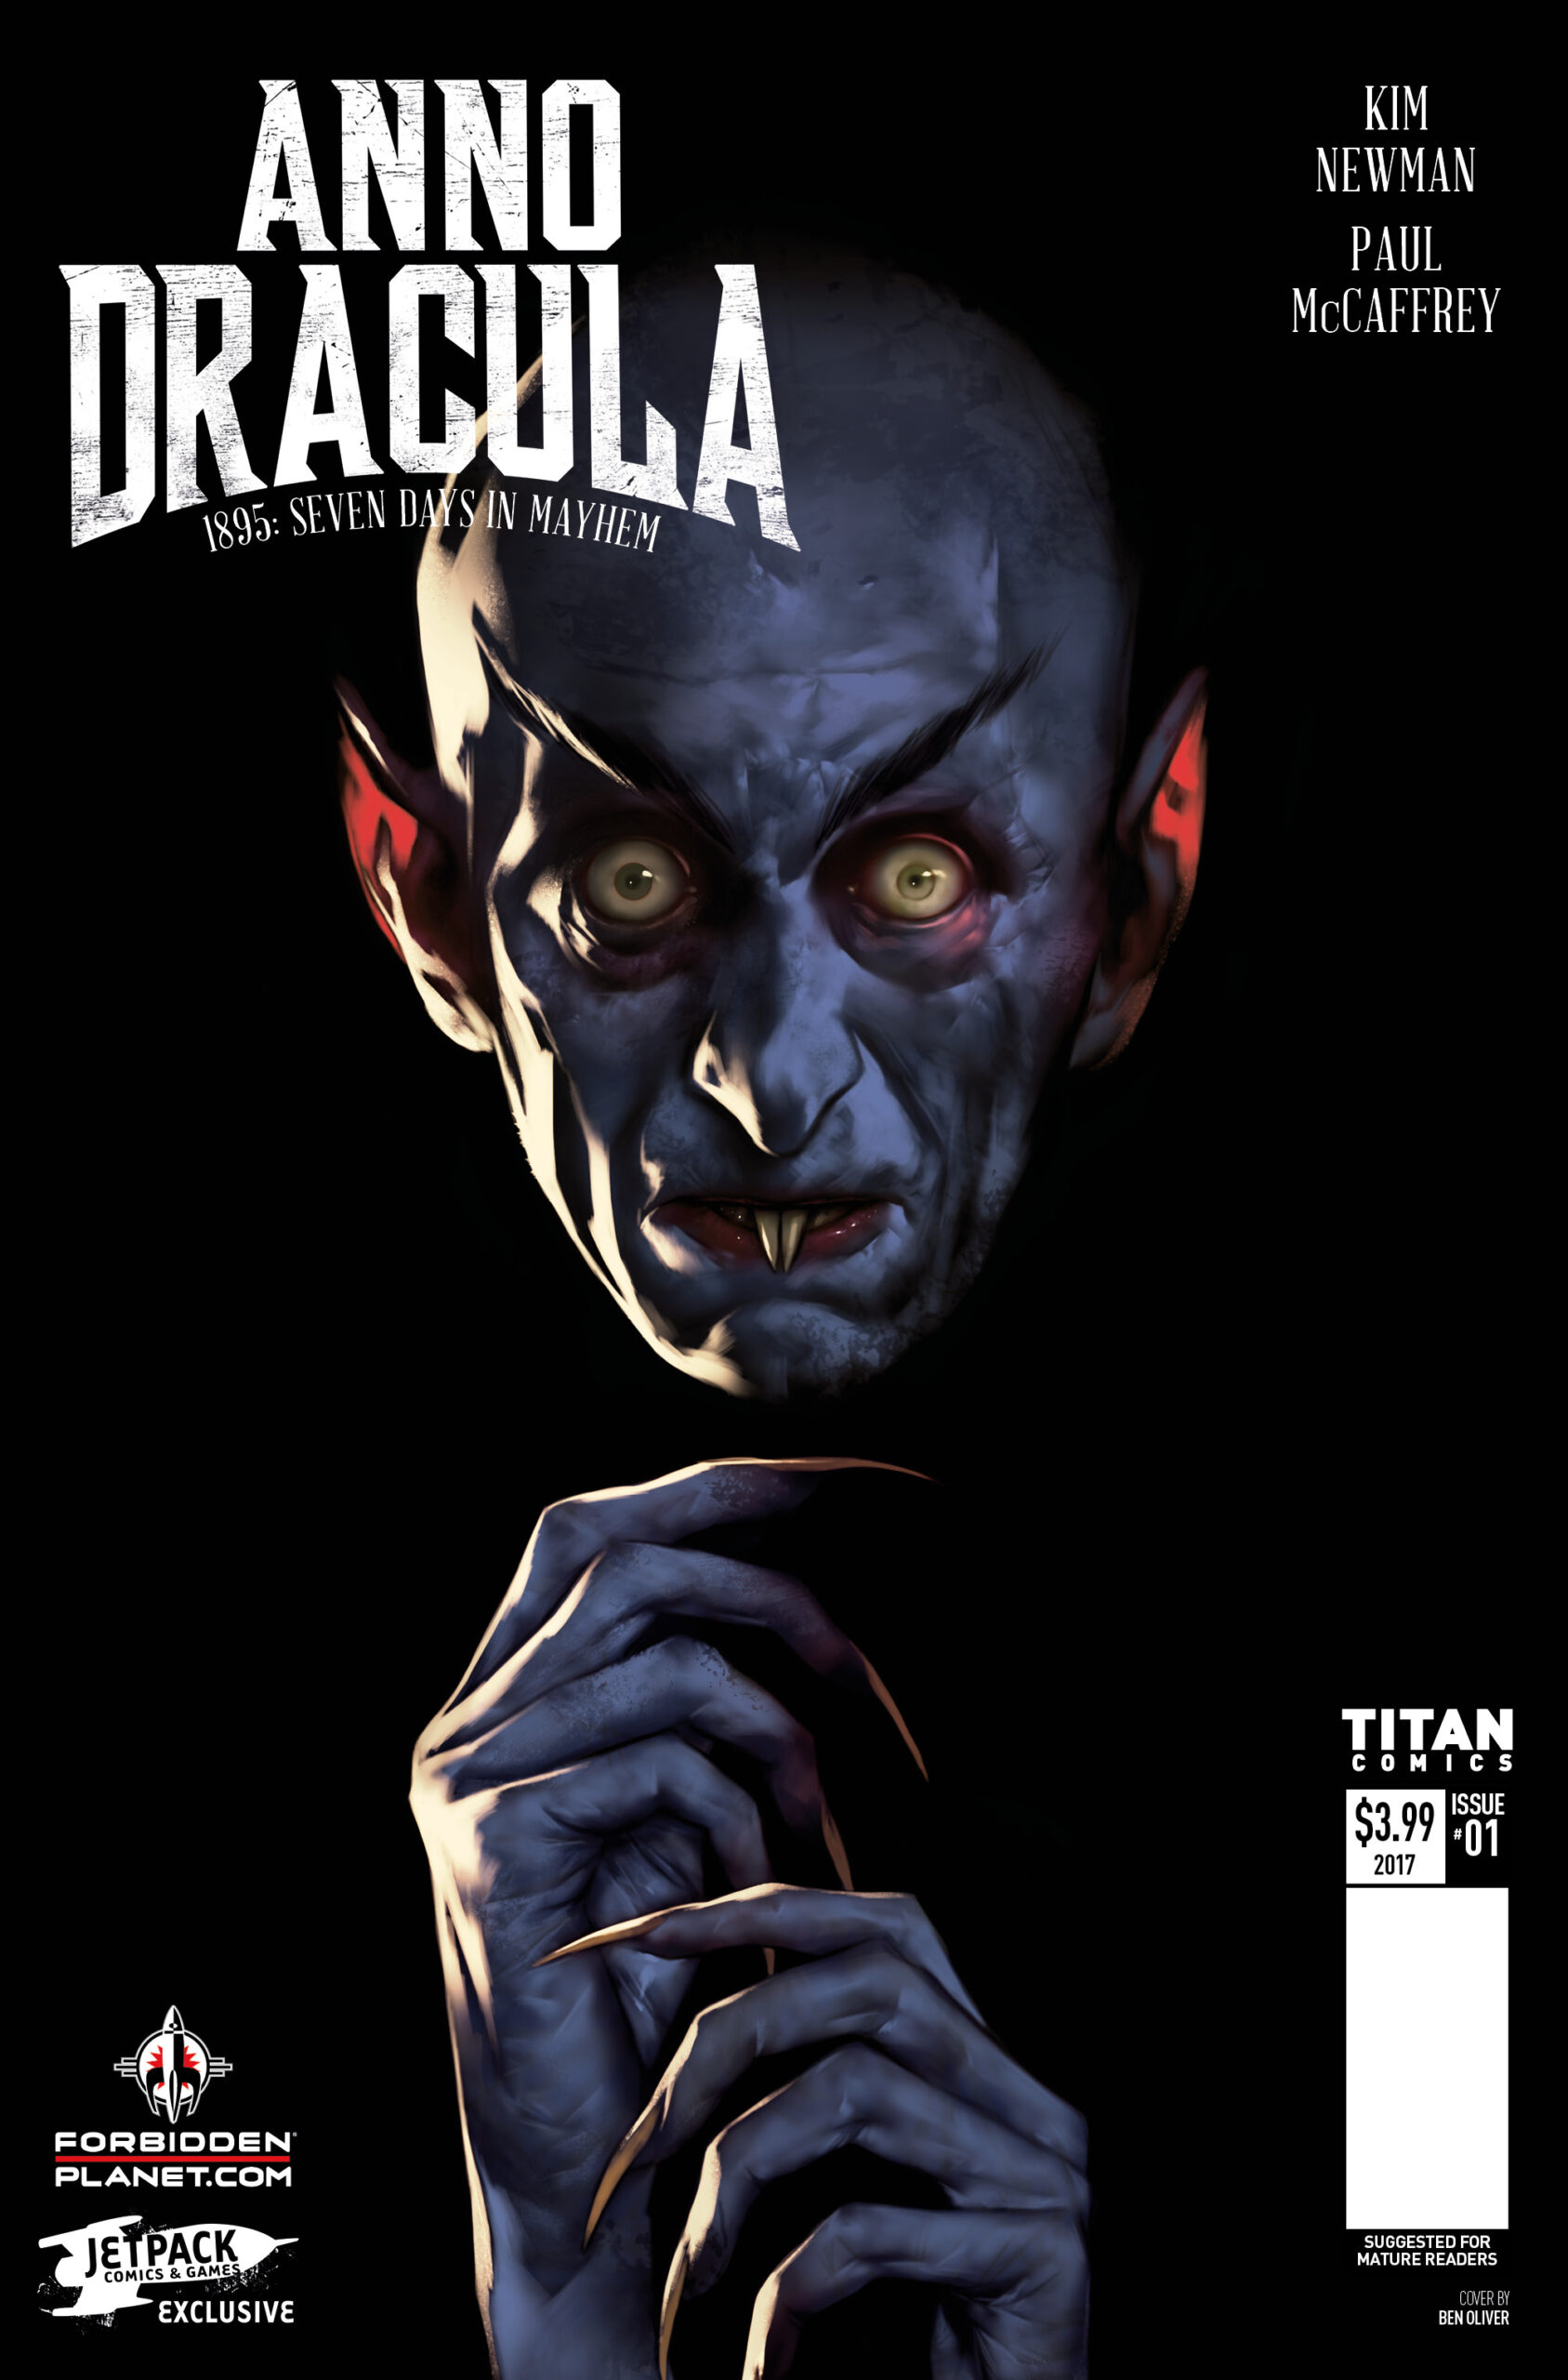 ANNO DRACULA #1 preview – First Comics News